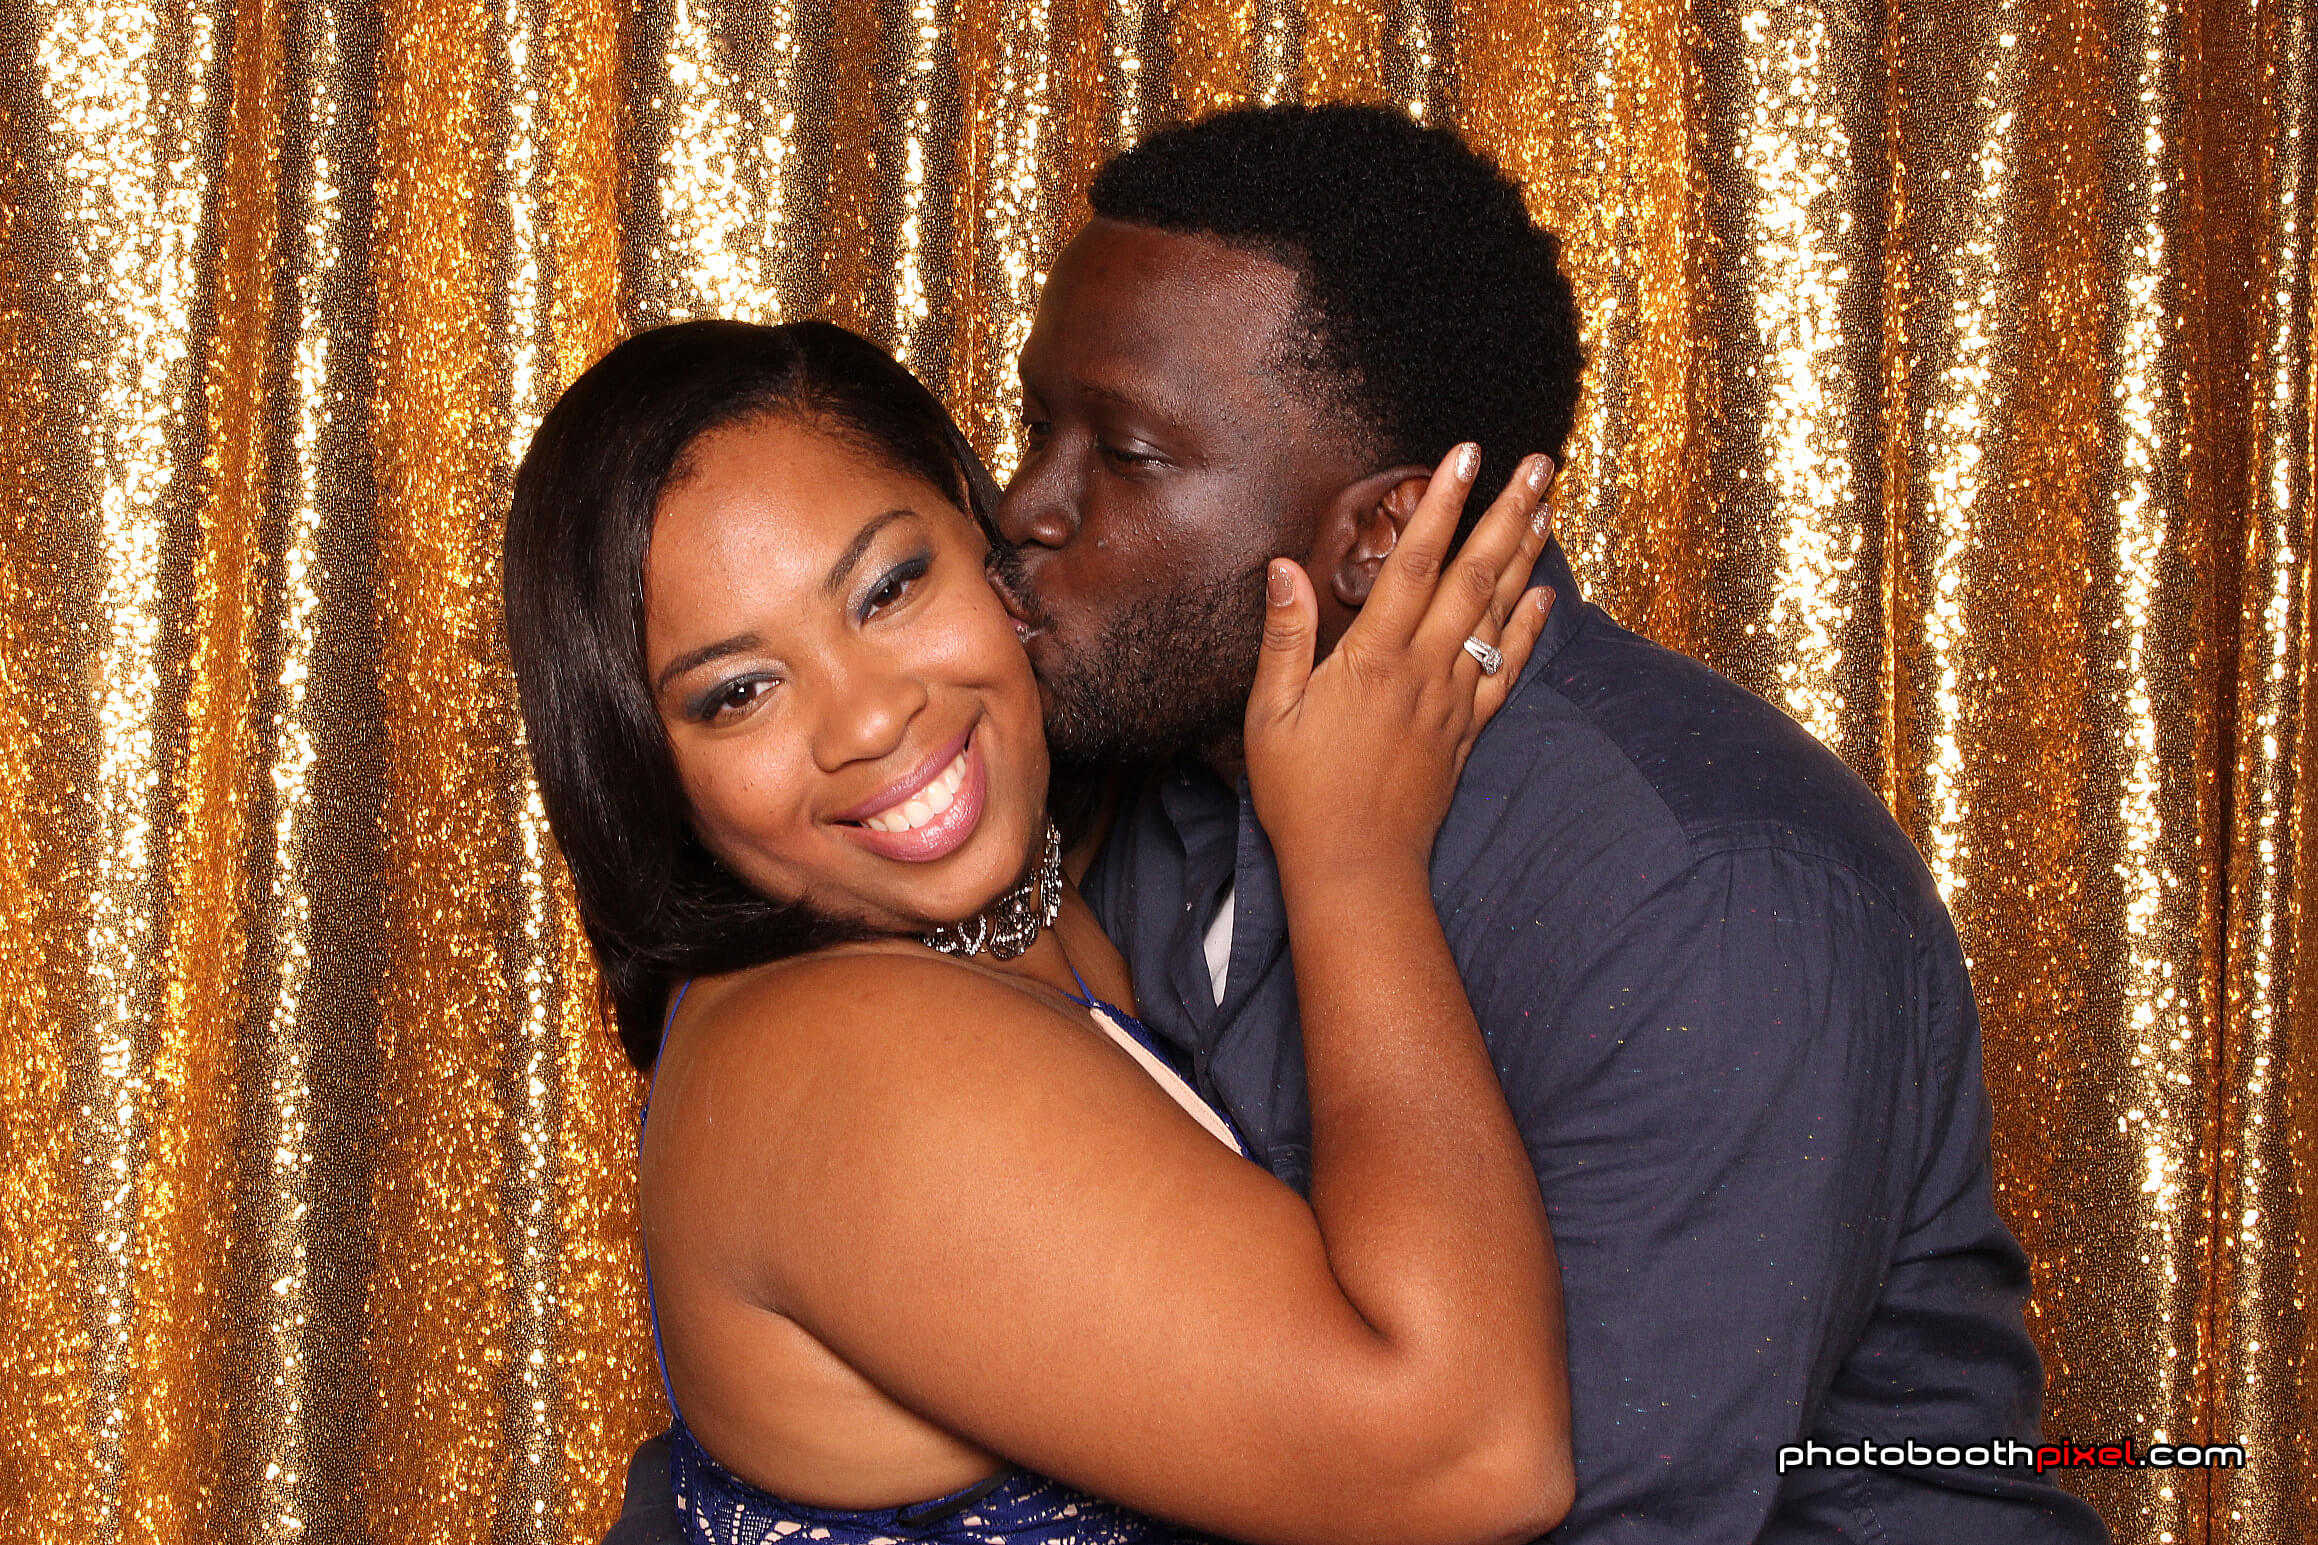 photo booth rental the haskell building jacksonville fl